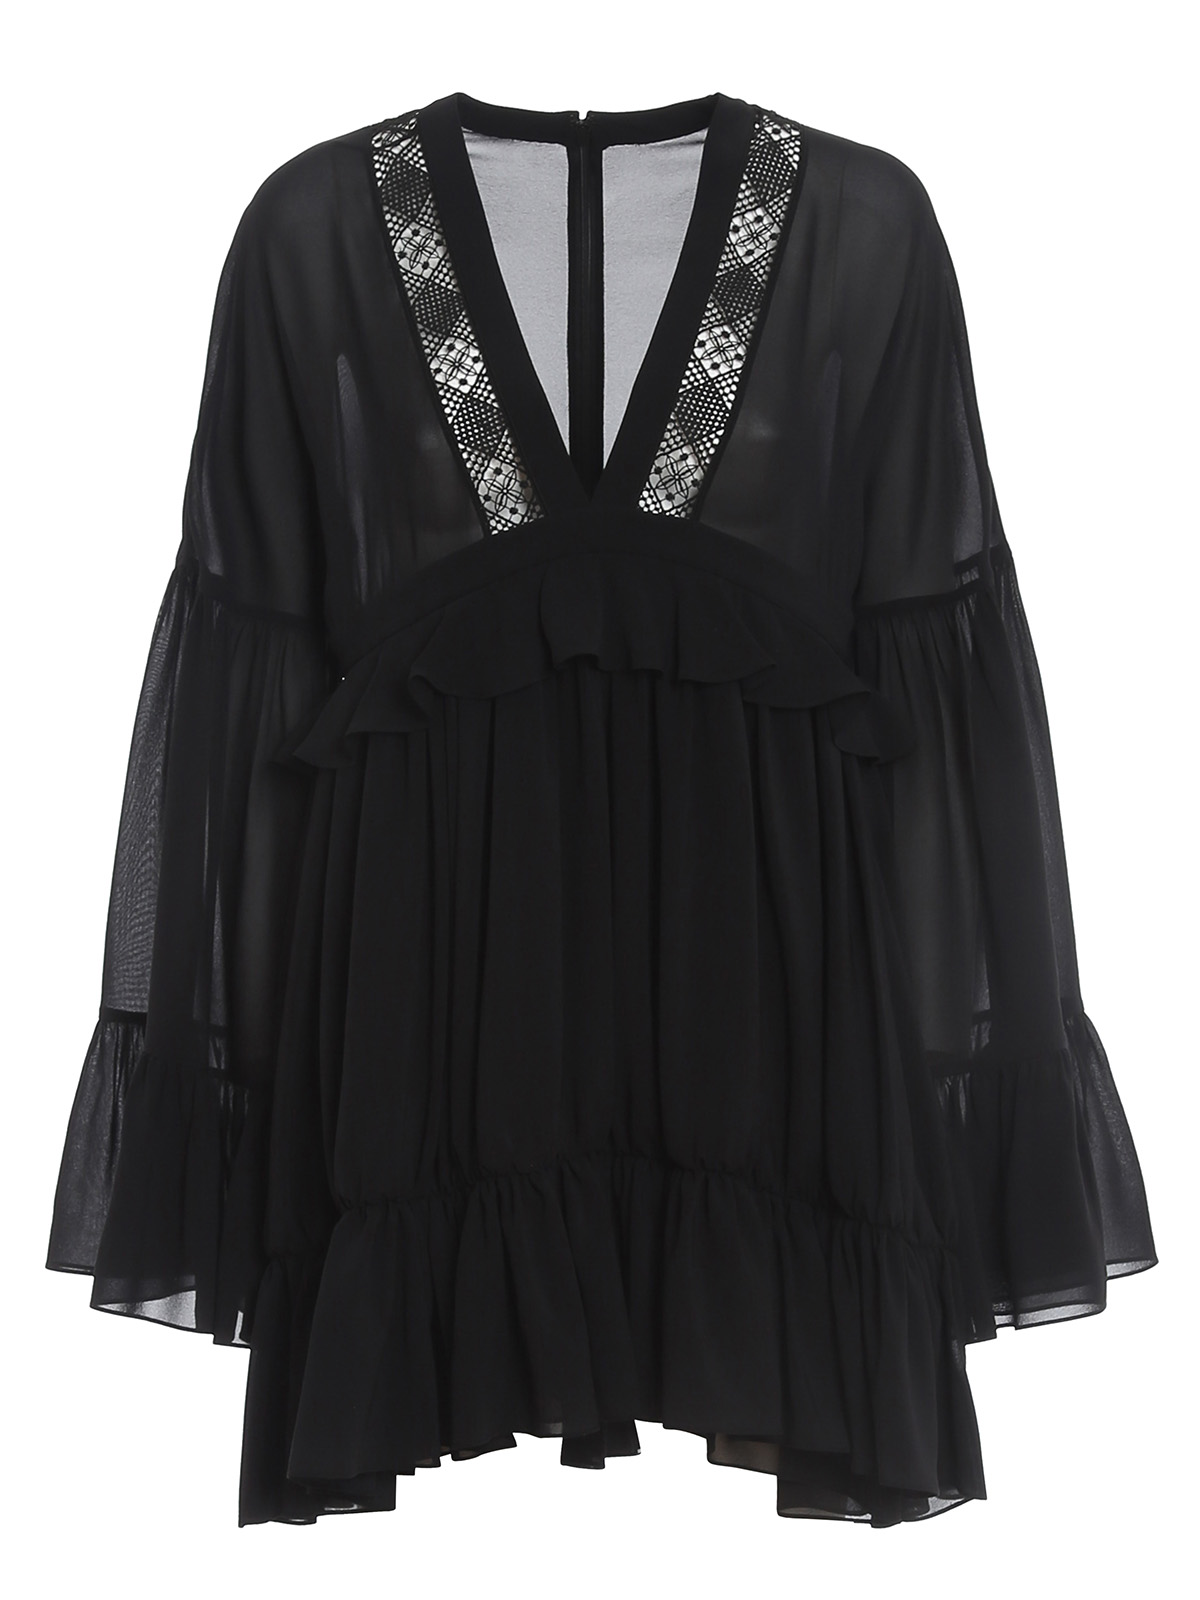 Picture of Saint Laurent Dress